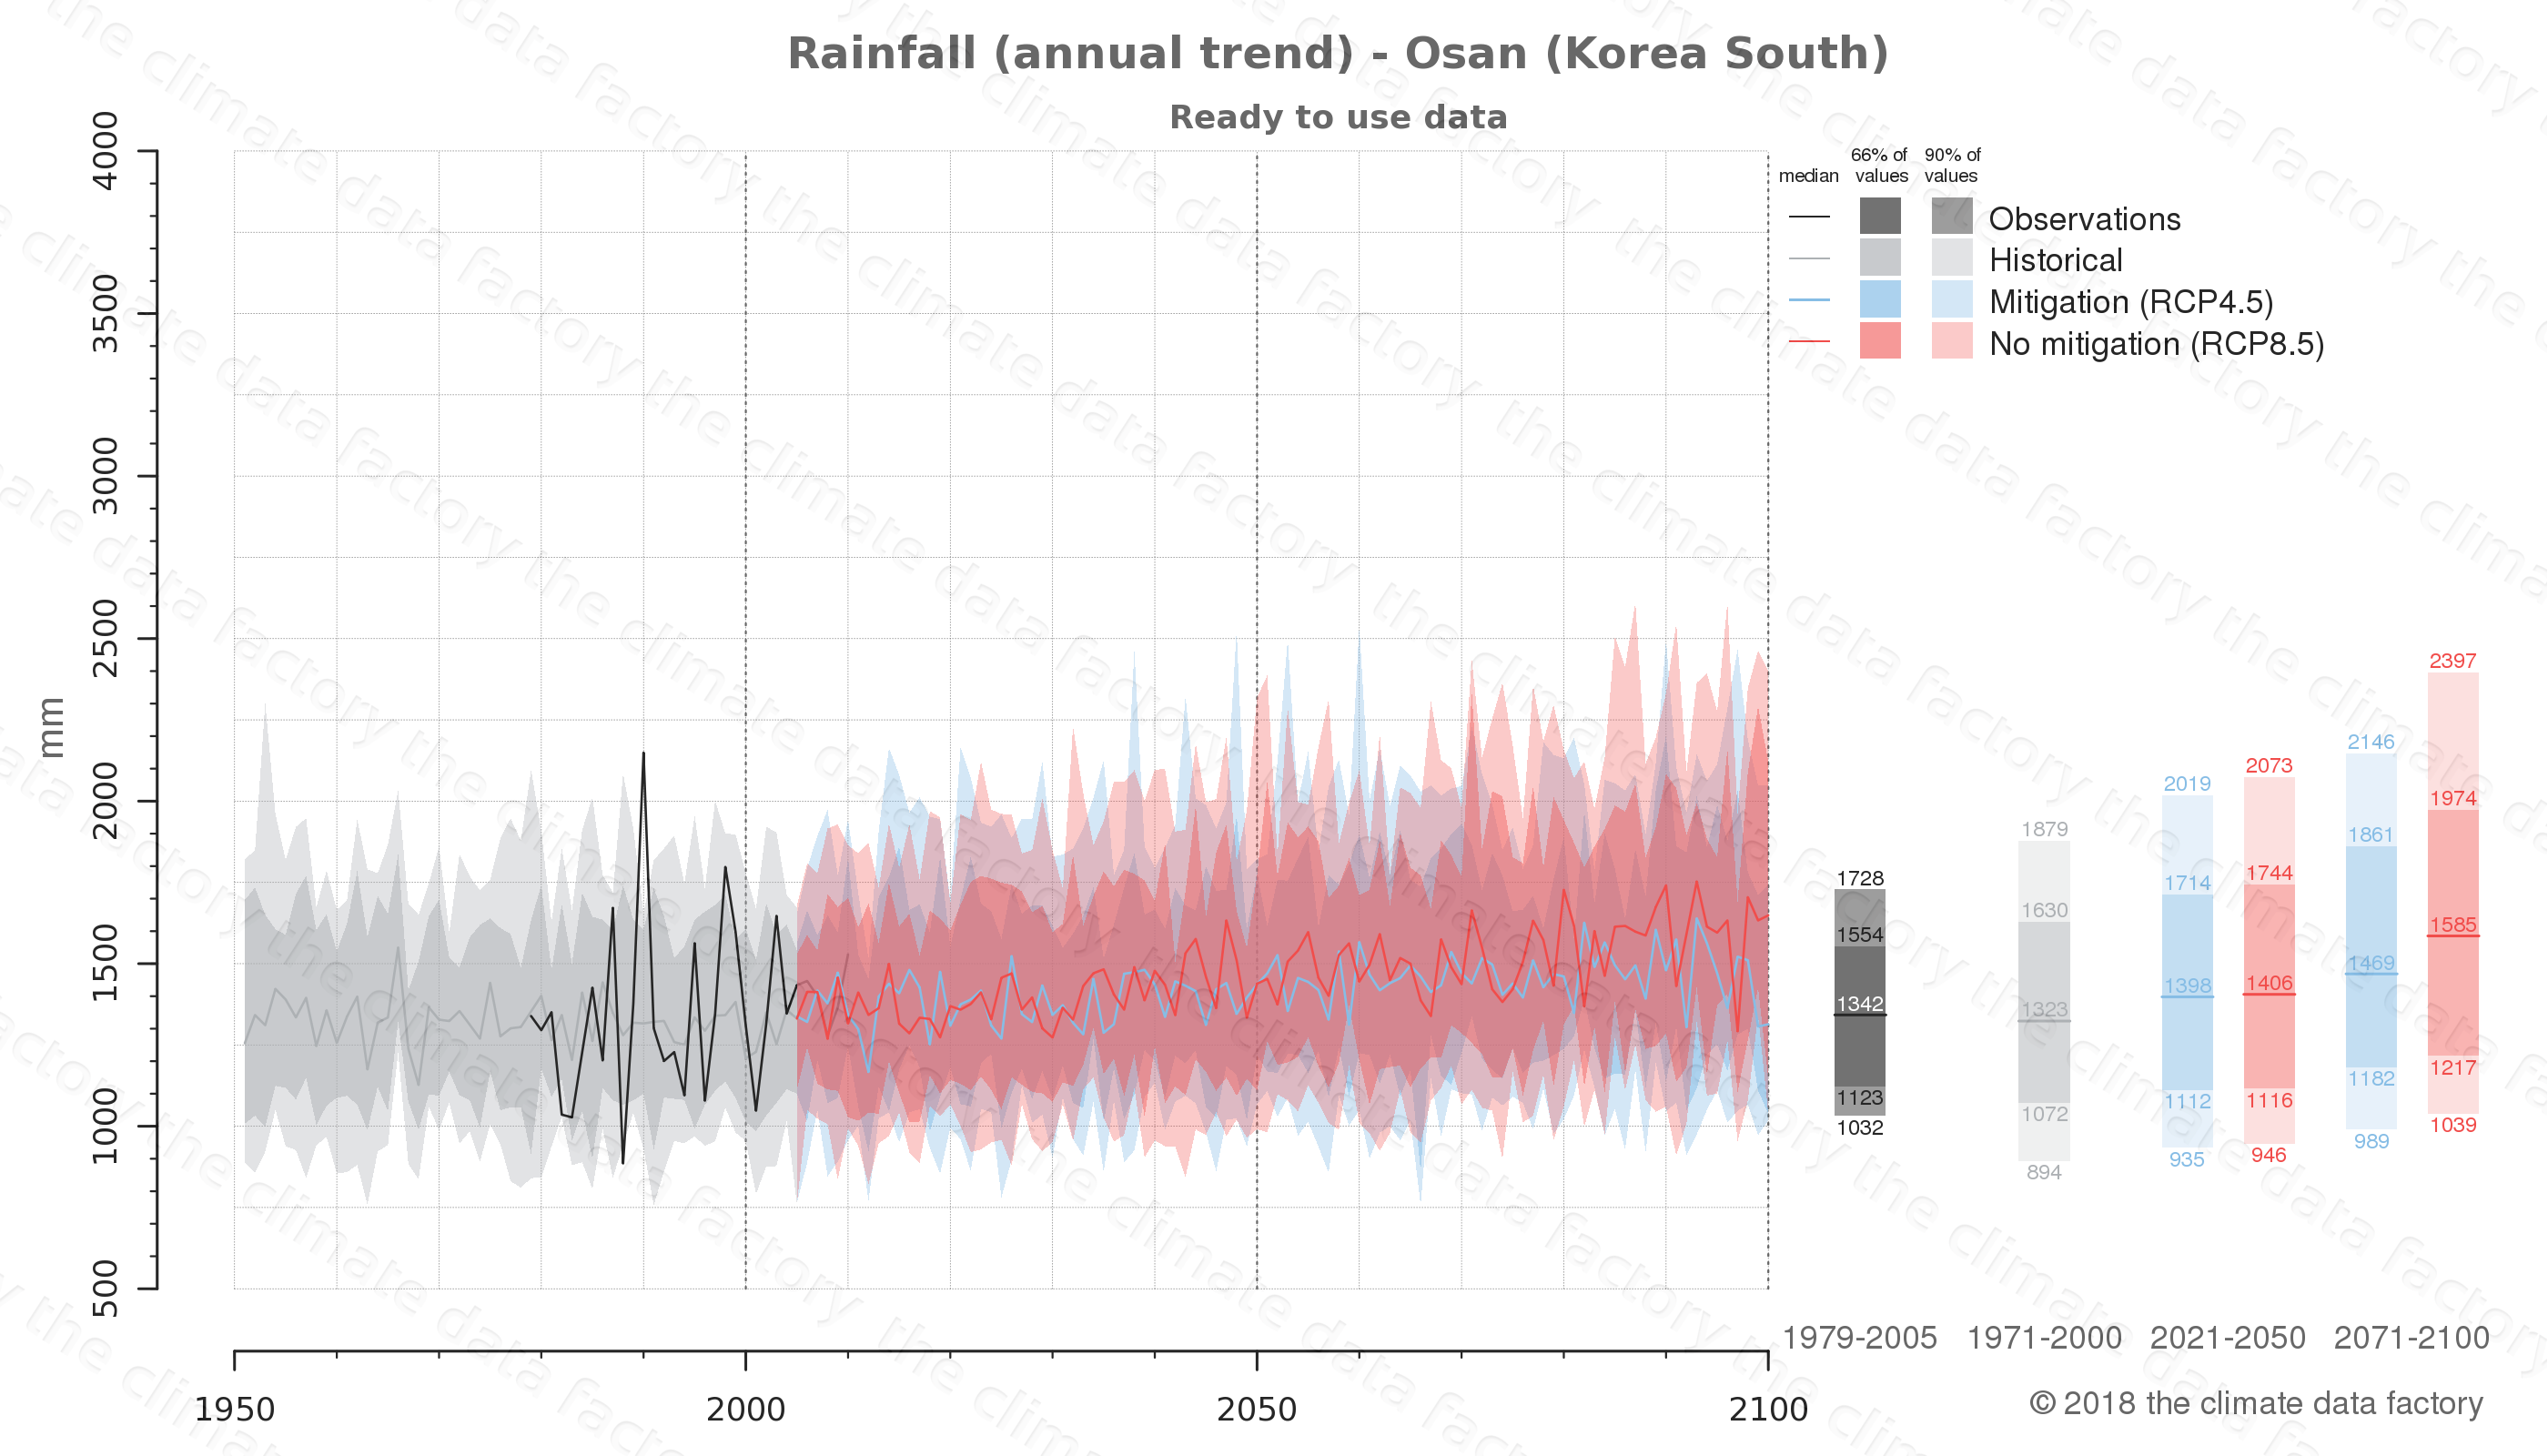 climate change data policy adaptation climate graph city data rainfall osan south korea